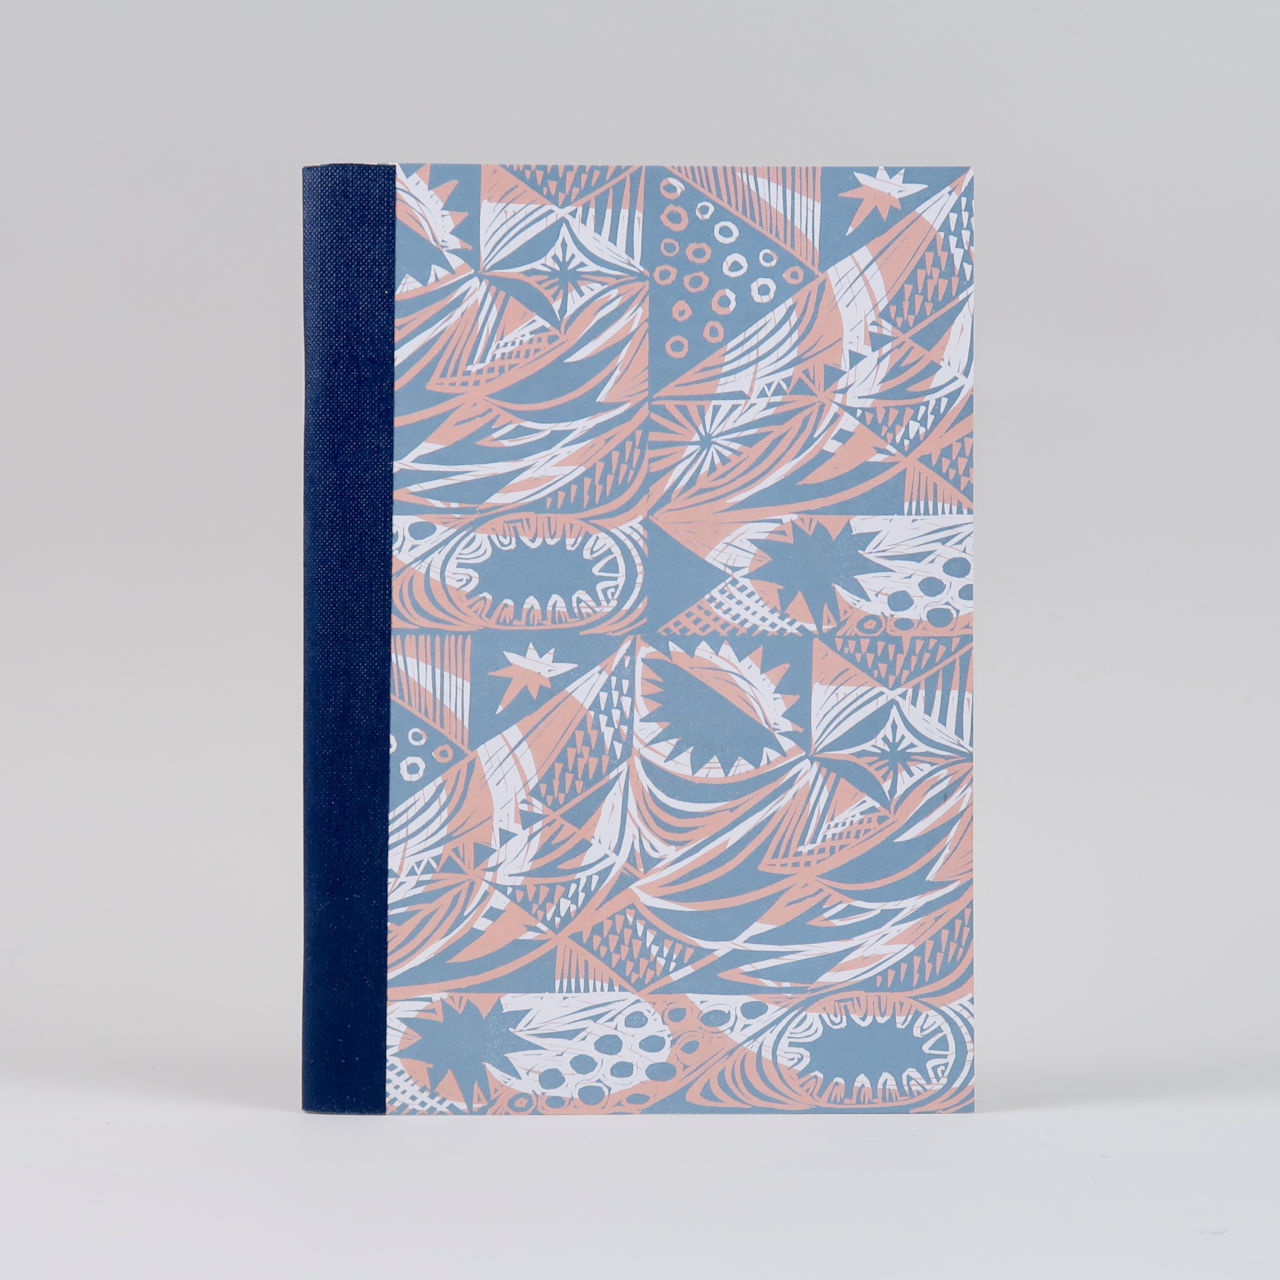 St Jude's Notebook by Mark Hearld